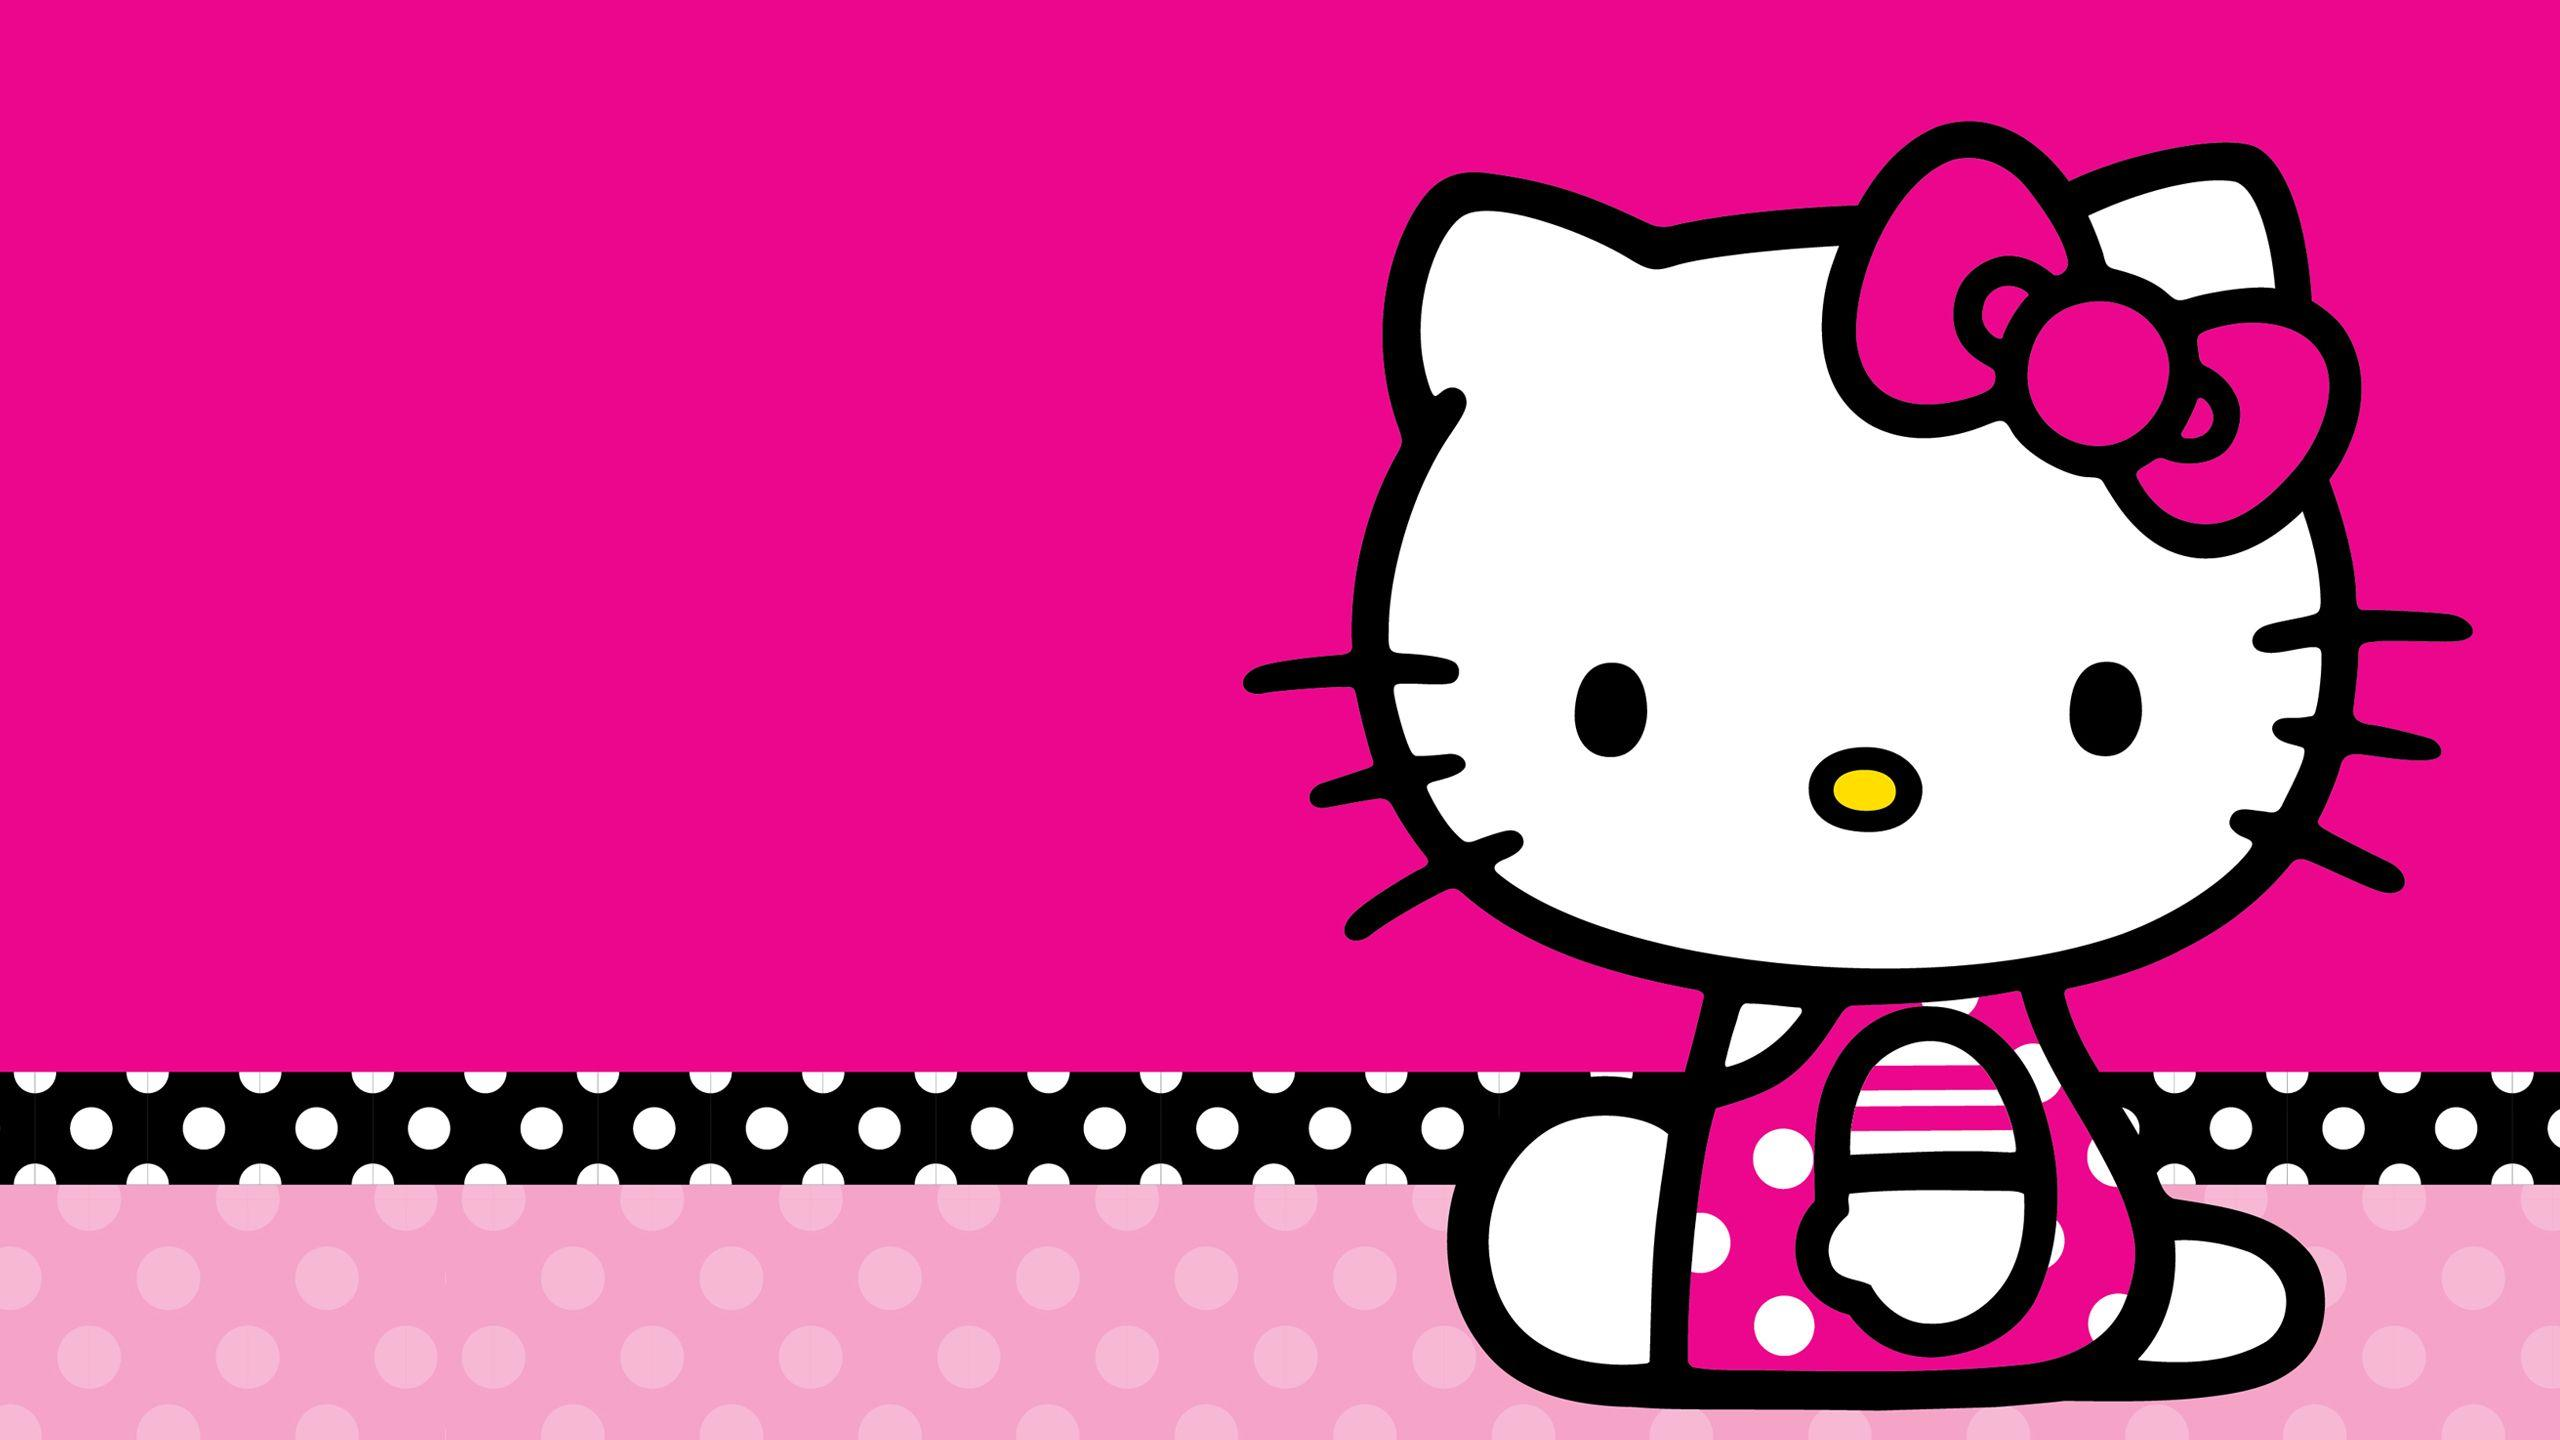 Nerd Hello Kitty Backgrounds For Facebook